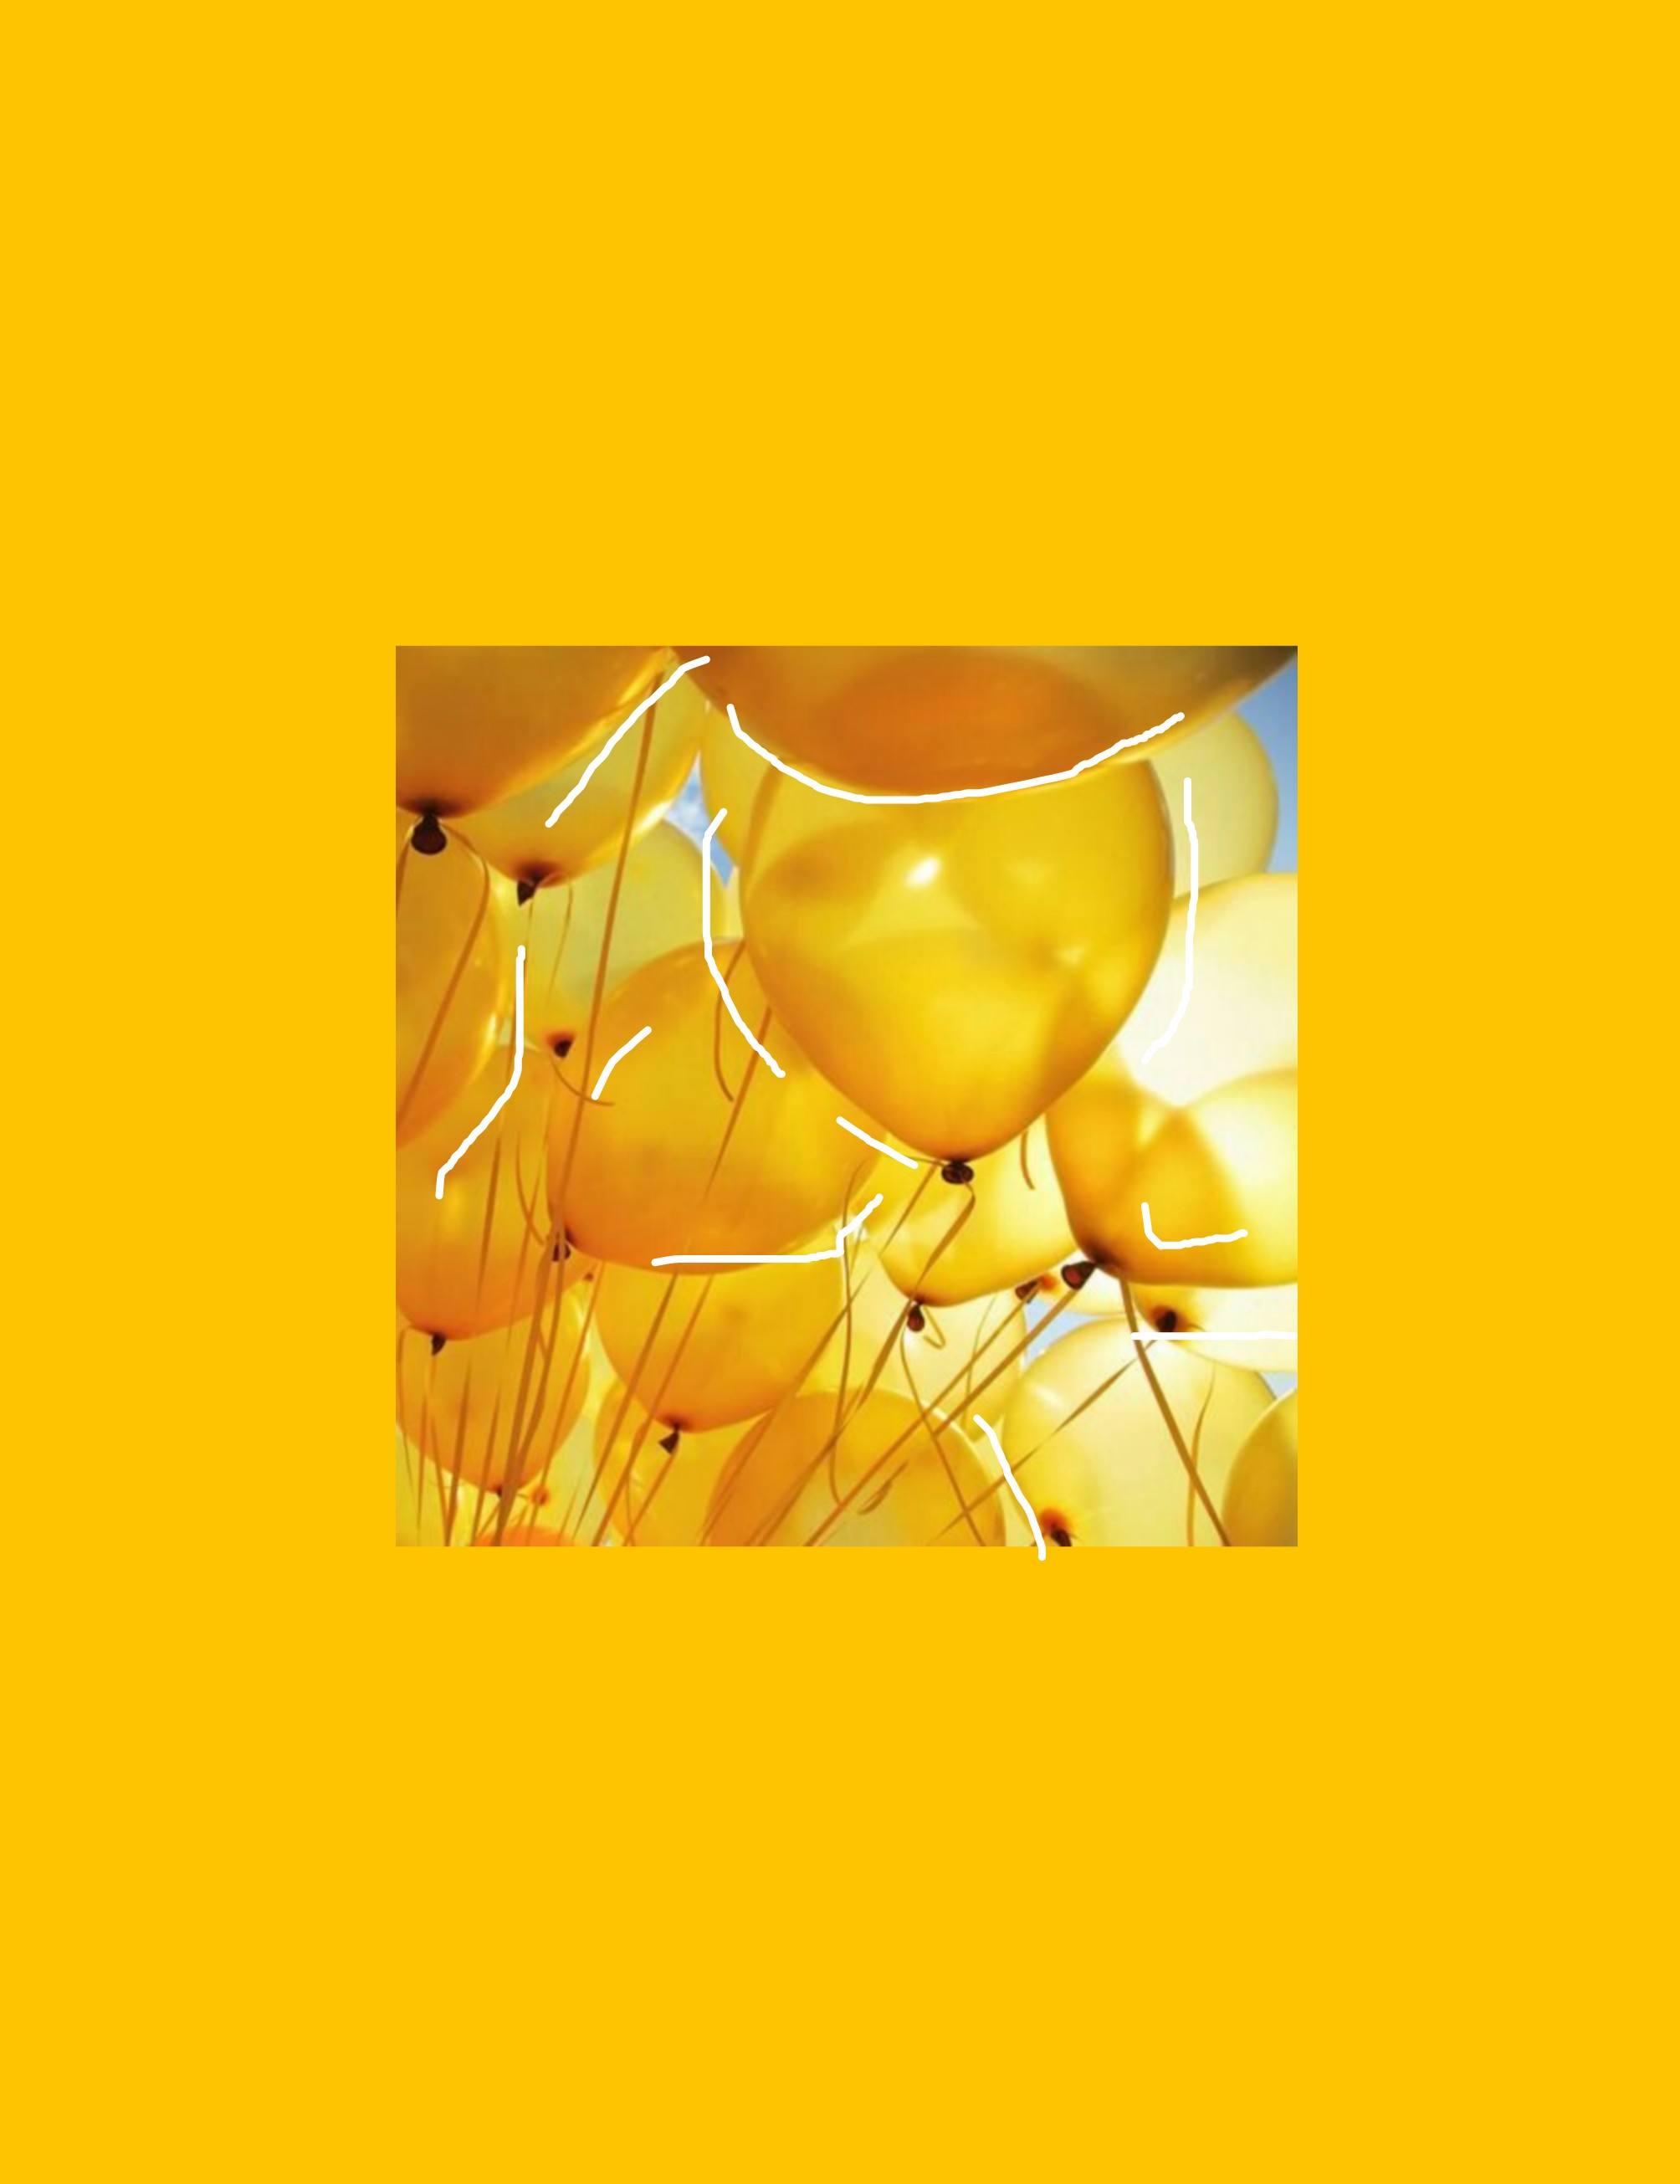 Yellow Yellowwallpaper Walpaper Aesthetic Balloons Yell